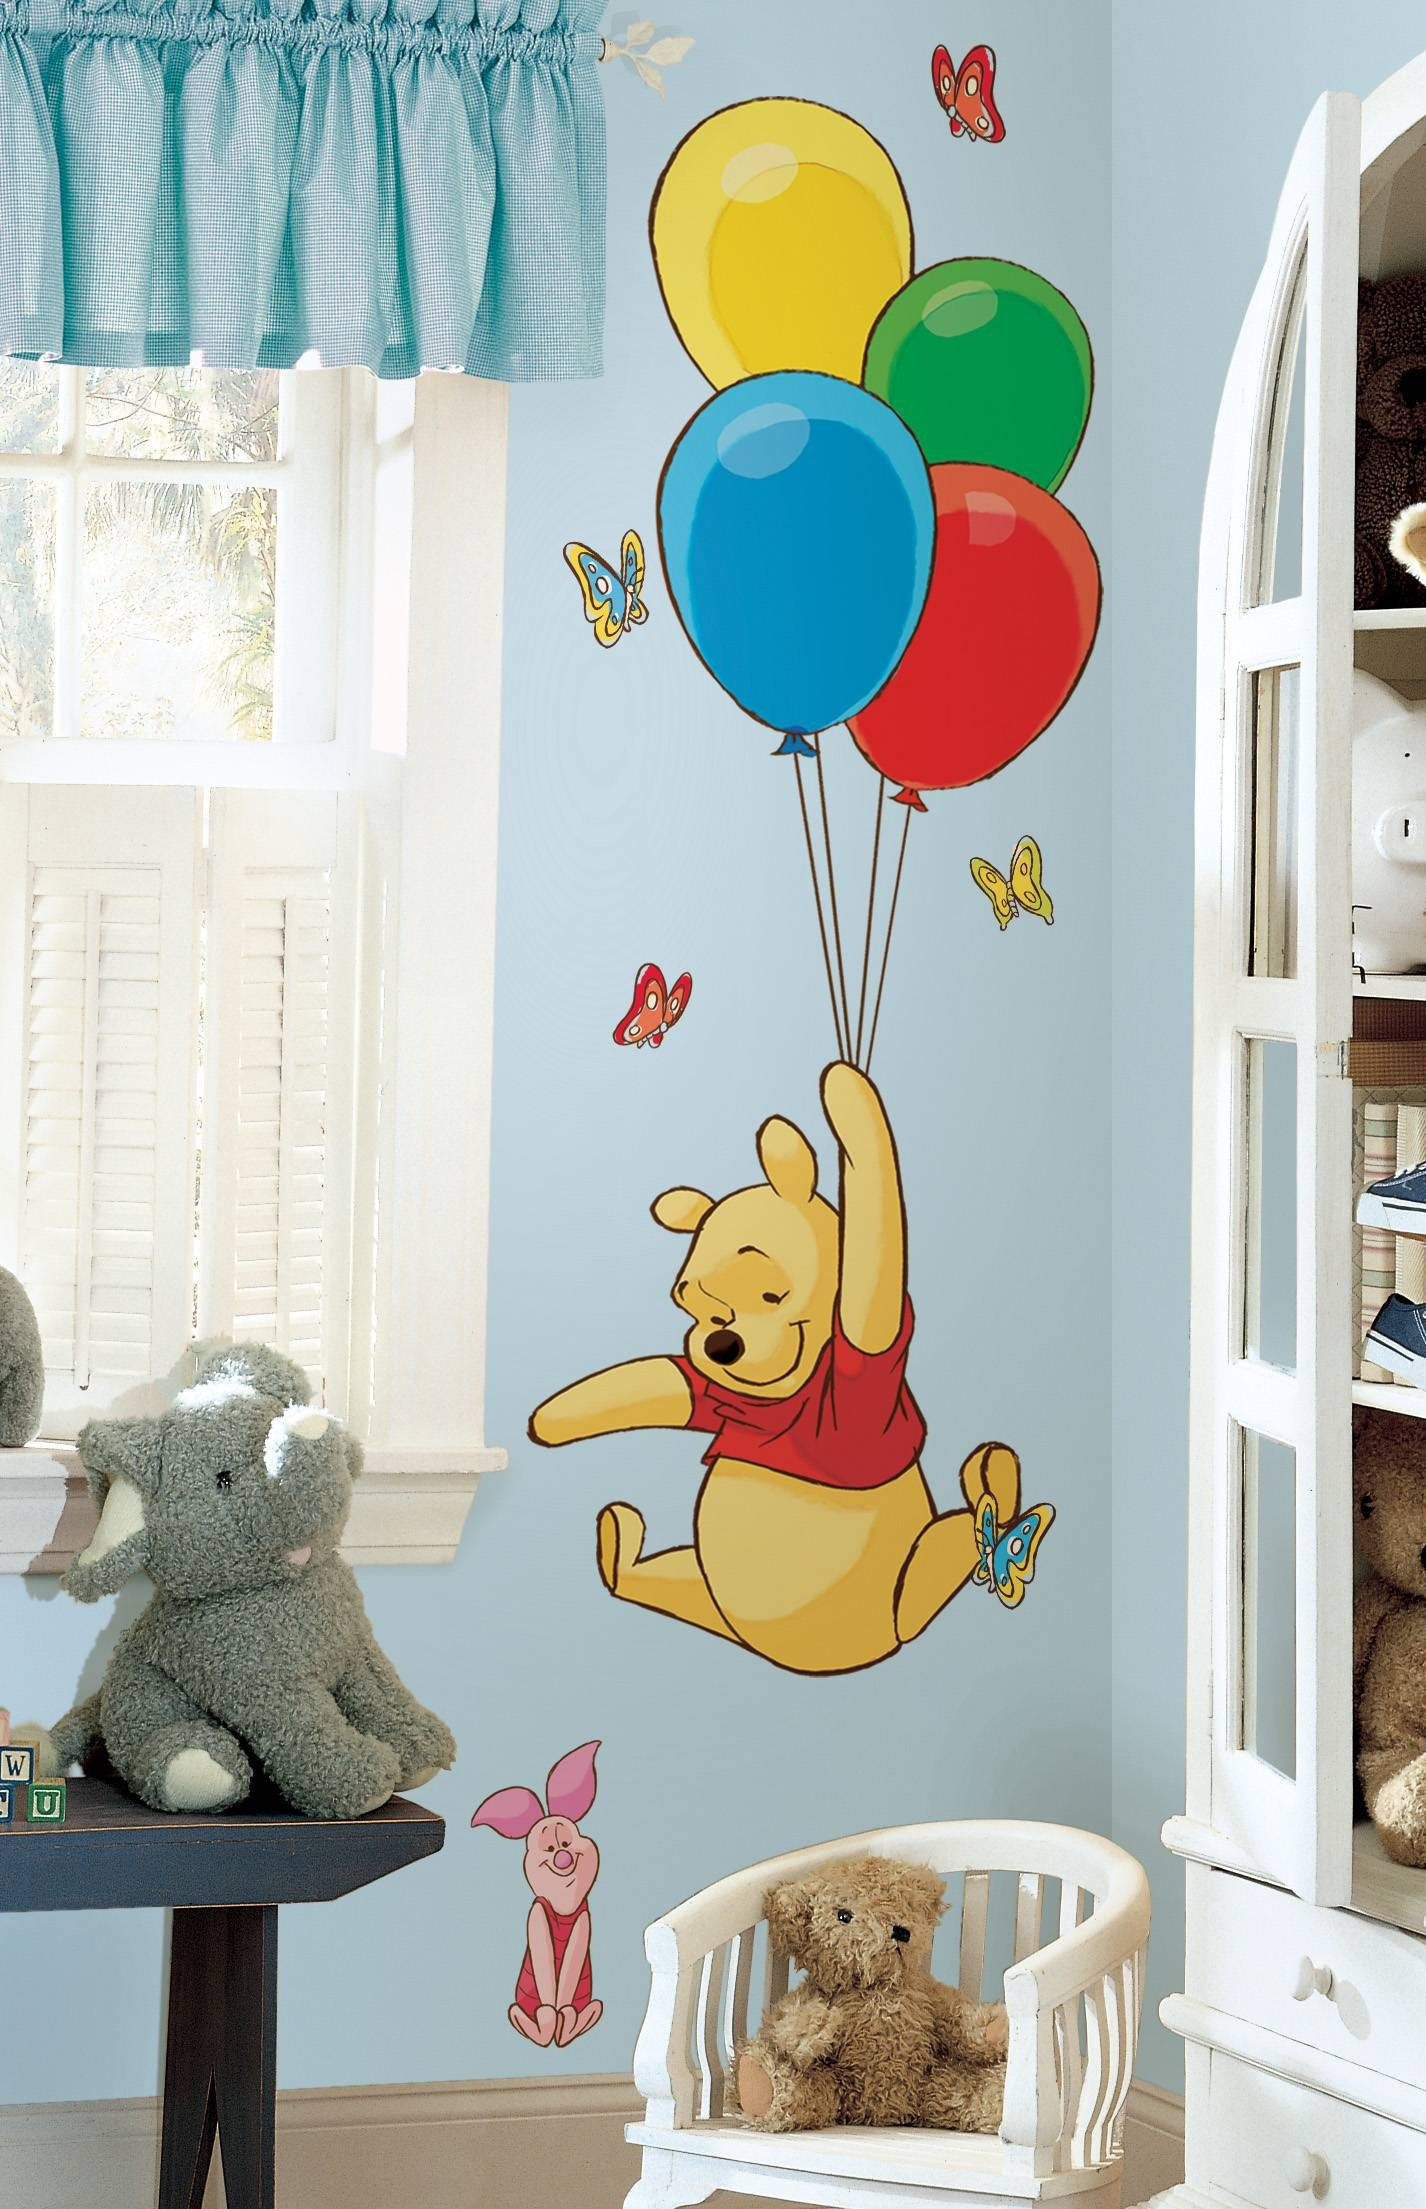 Decorating A Nursery With Winnie The Pooh With Regard To Most Recently Released Winnie The Pooh Wall Art For Nursery (View 5 of 15)